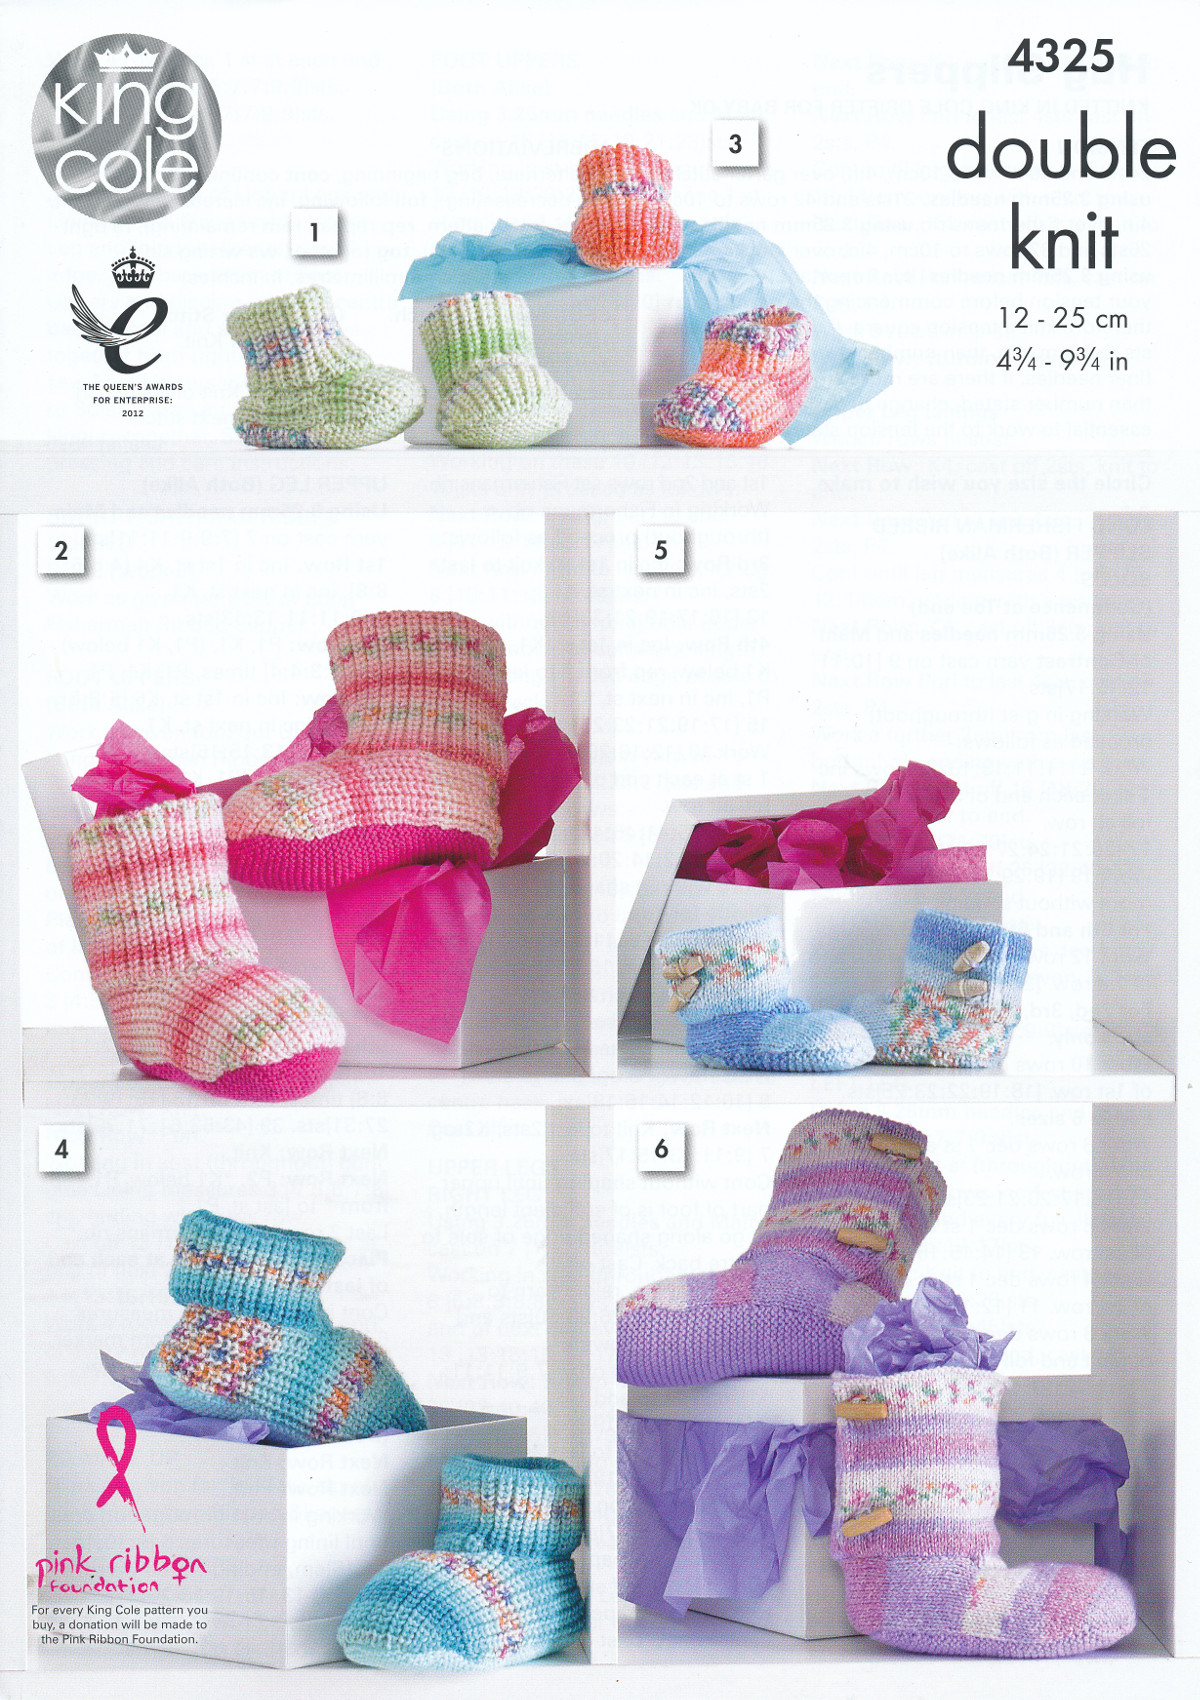 Double Knitting Patterns For Toddlers Free : King Cole Double Knit Pattern Fisherman or Toggle Slippers Baby Drifter DK 43...